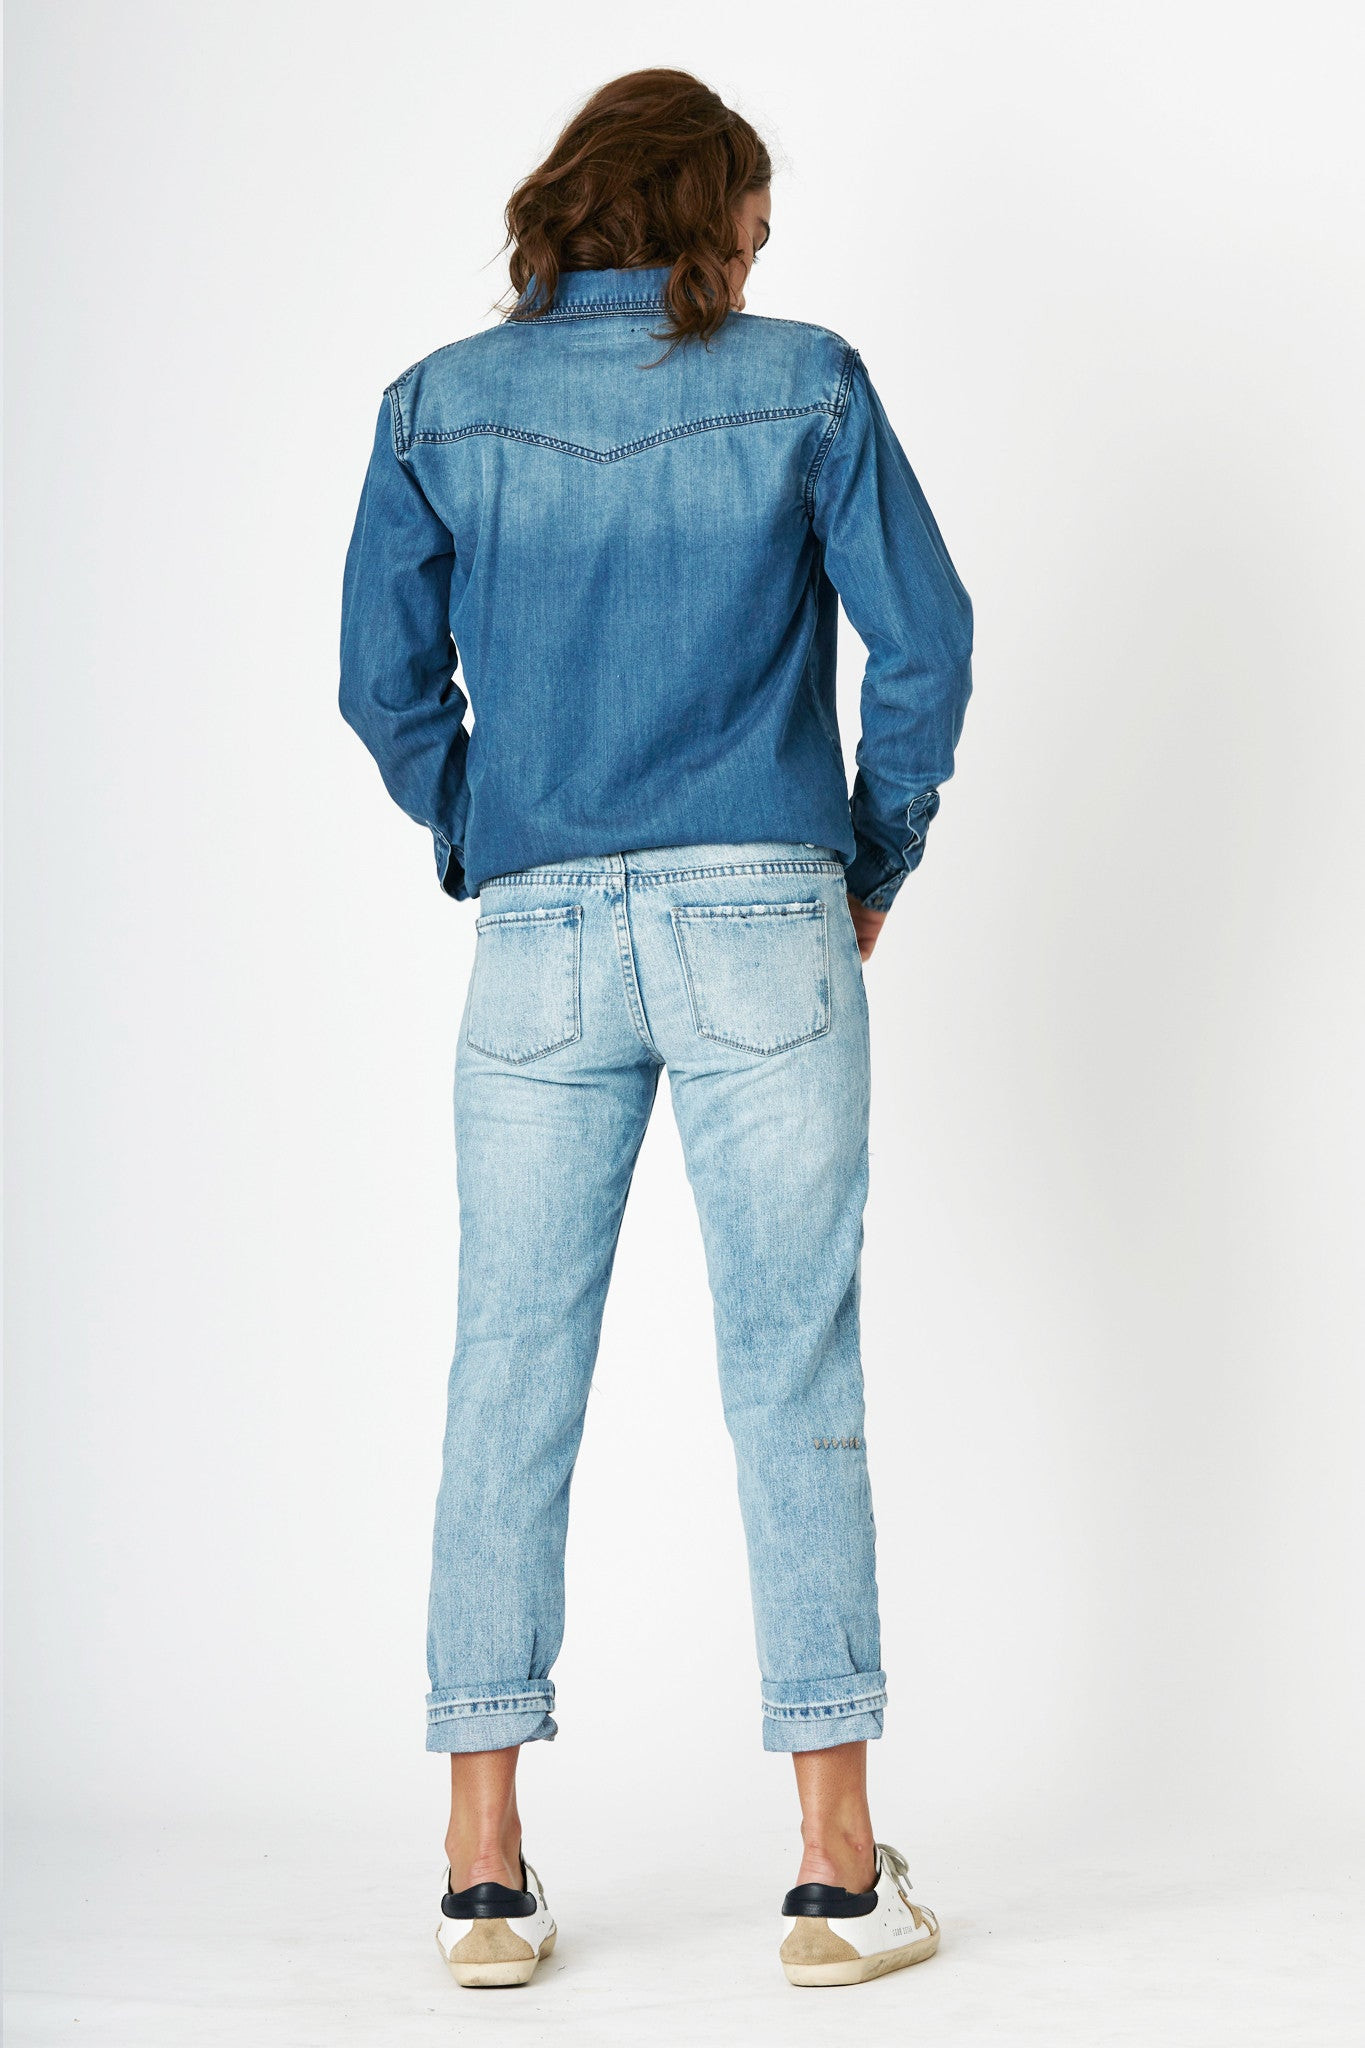 #3F13 Relaxed Shirt Galaxy Blue - SALE - - denimcolab